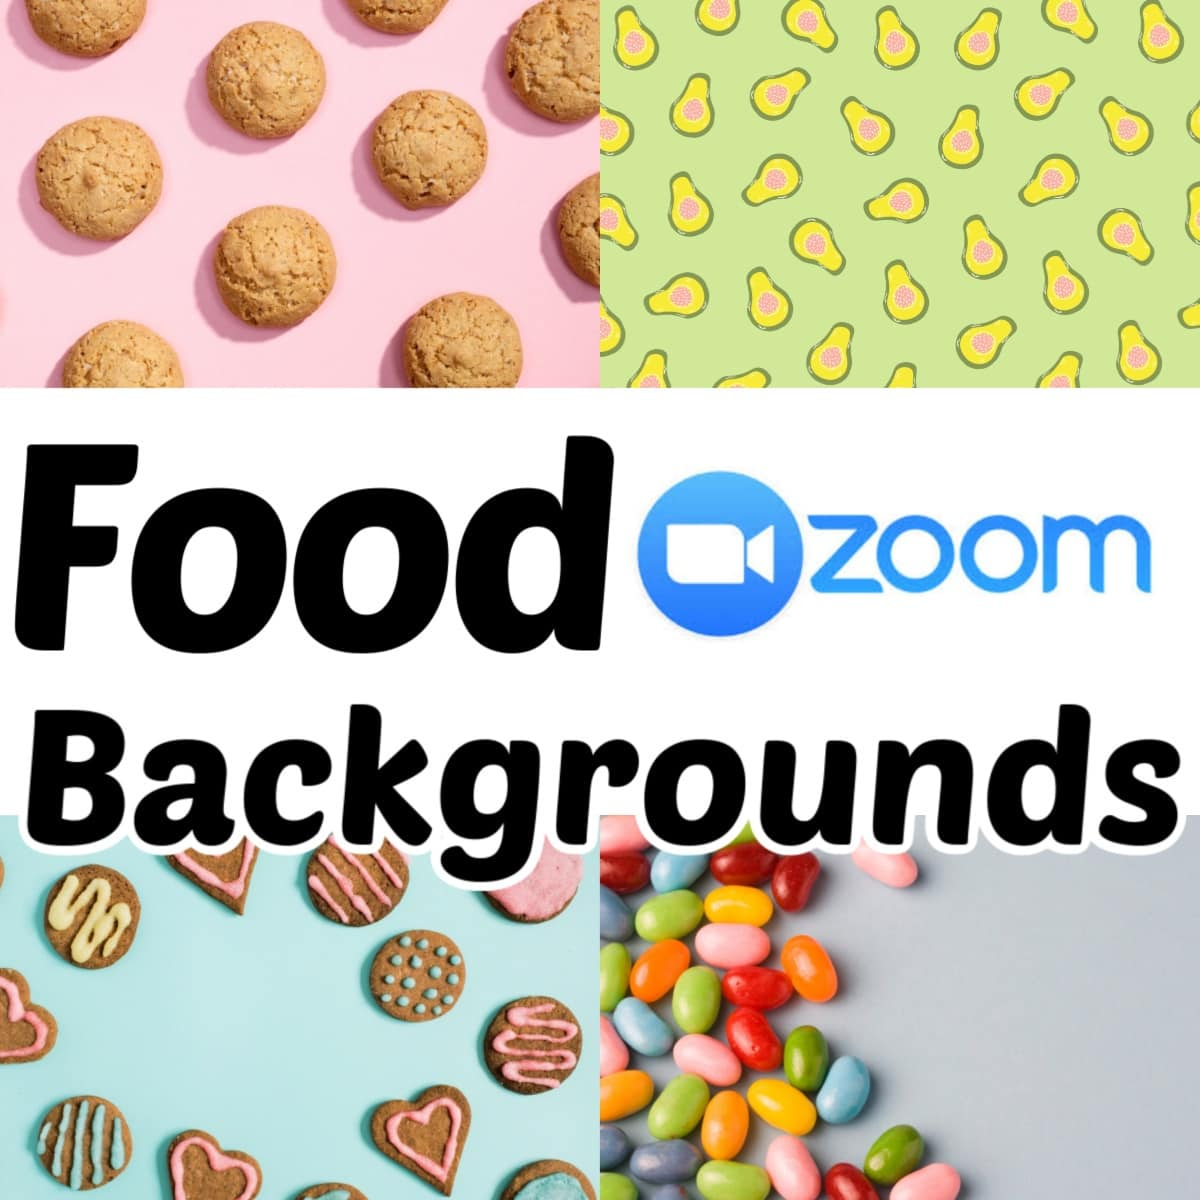 Food Related Backgrounds square image